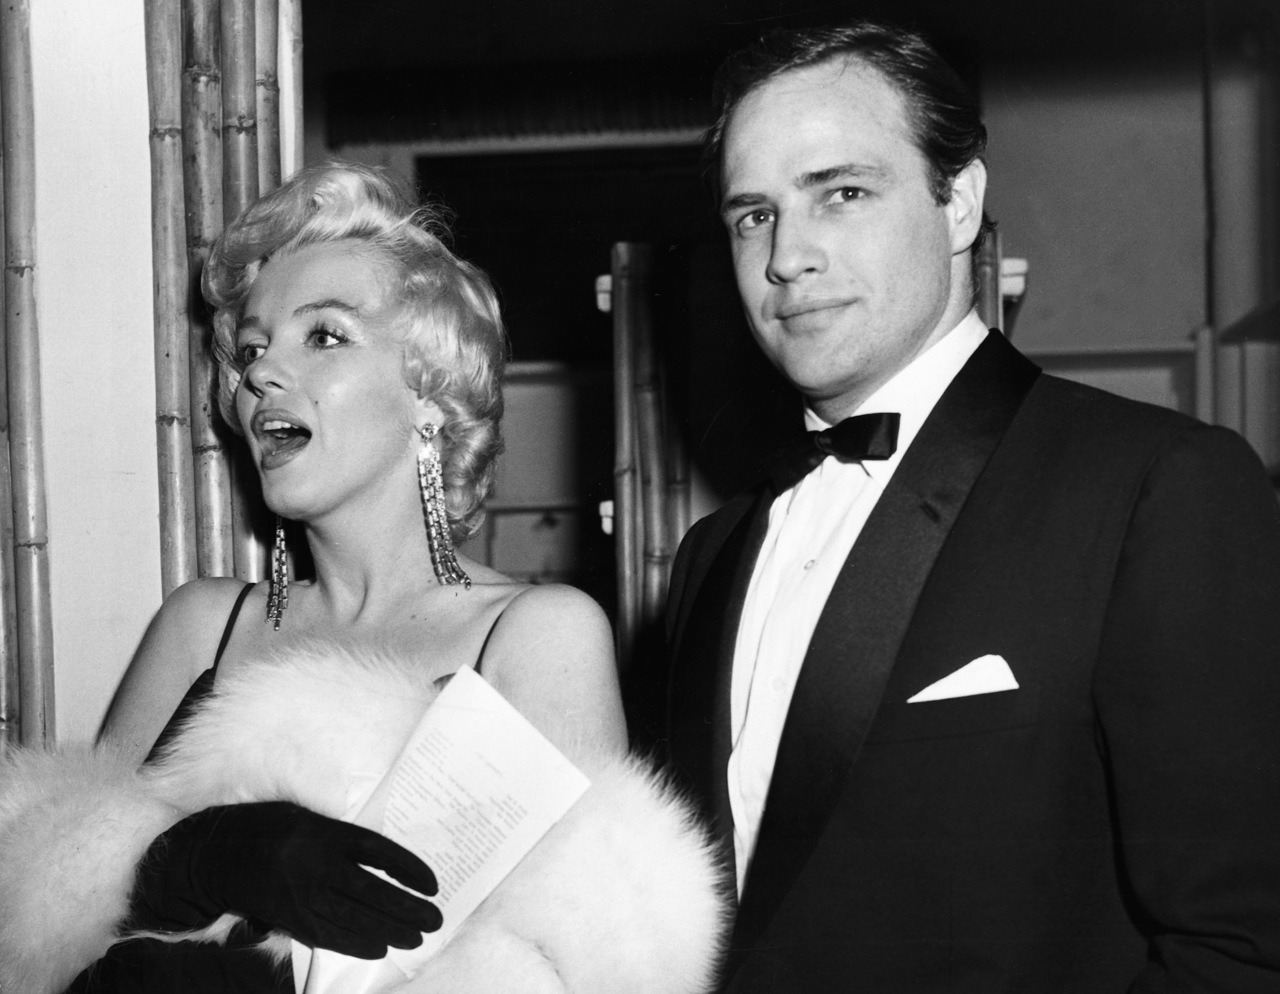 Marilyn Monroe and Marlon Brando at the premiere of The Rose Tattoo, December 13th, 1955